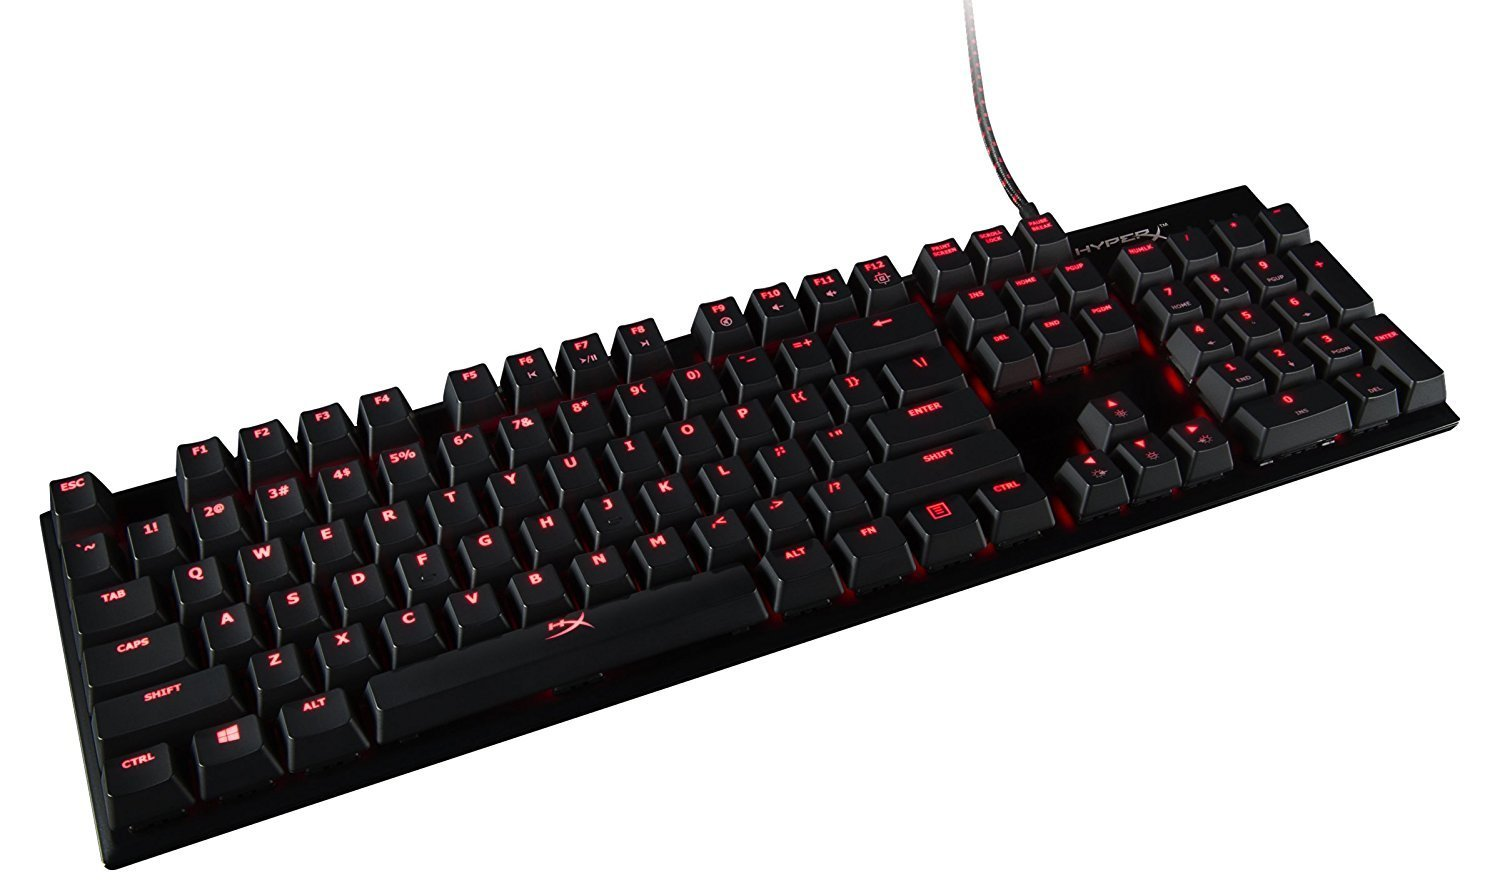 HyperX Alloy FPS Mechanical Gaming Keyboard (Cherry MX Brown) for PC image